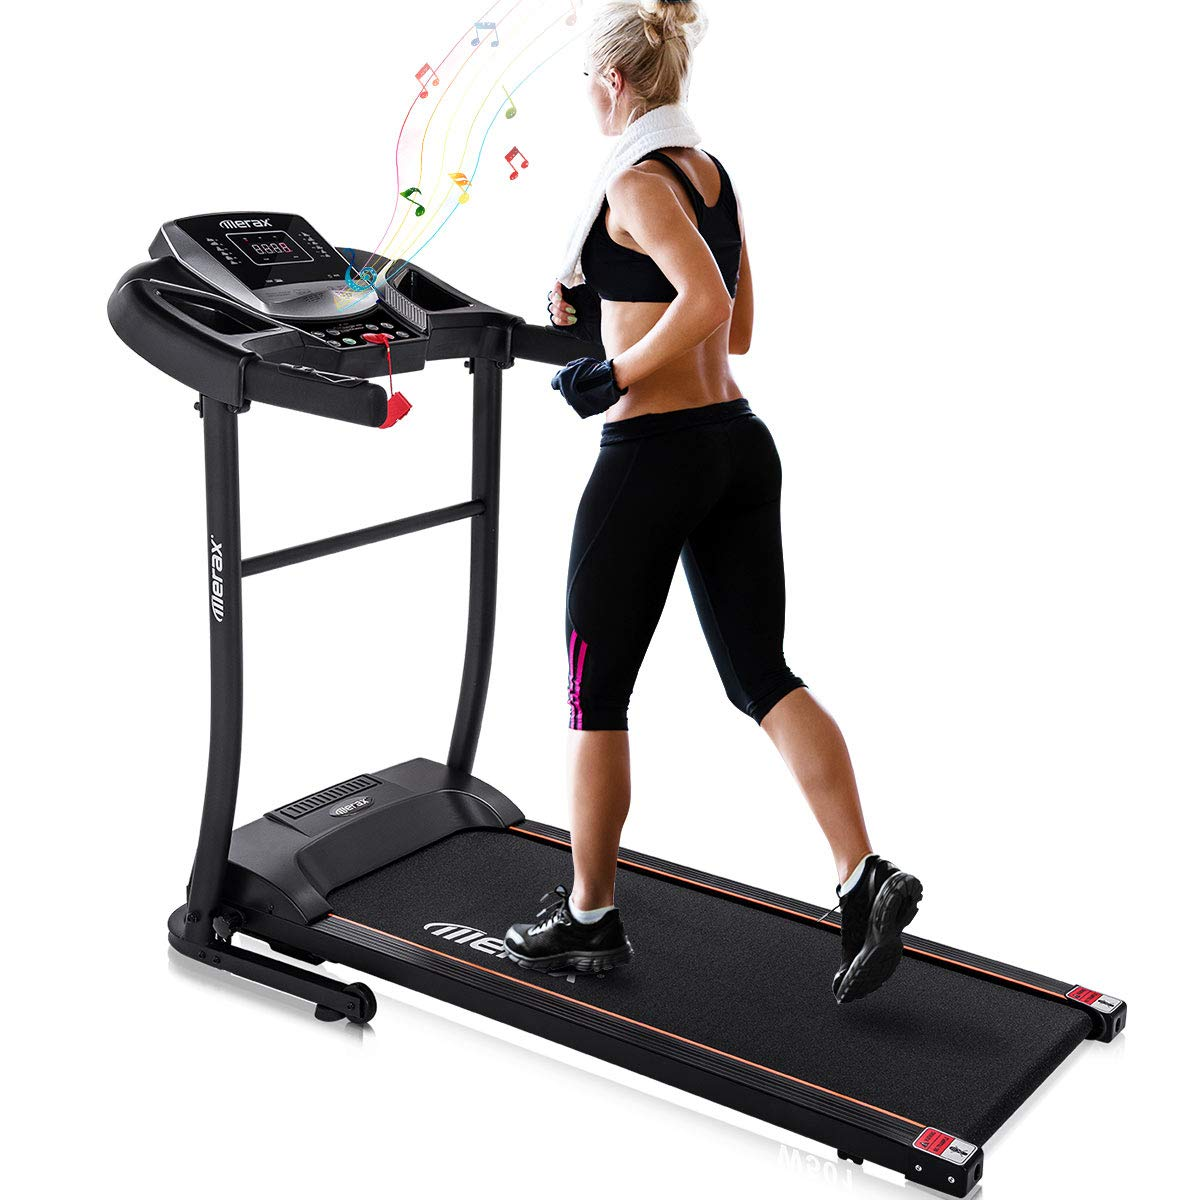 Merax Electric Folding Treadmill - Easy Assembly Fitness Motorized Running Jogging Machine with Speakers for Home Use, 12 Preset Programs (Black) by Merax (Image #1)